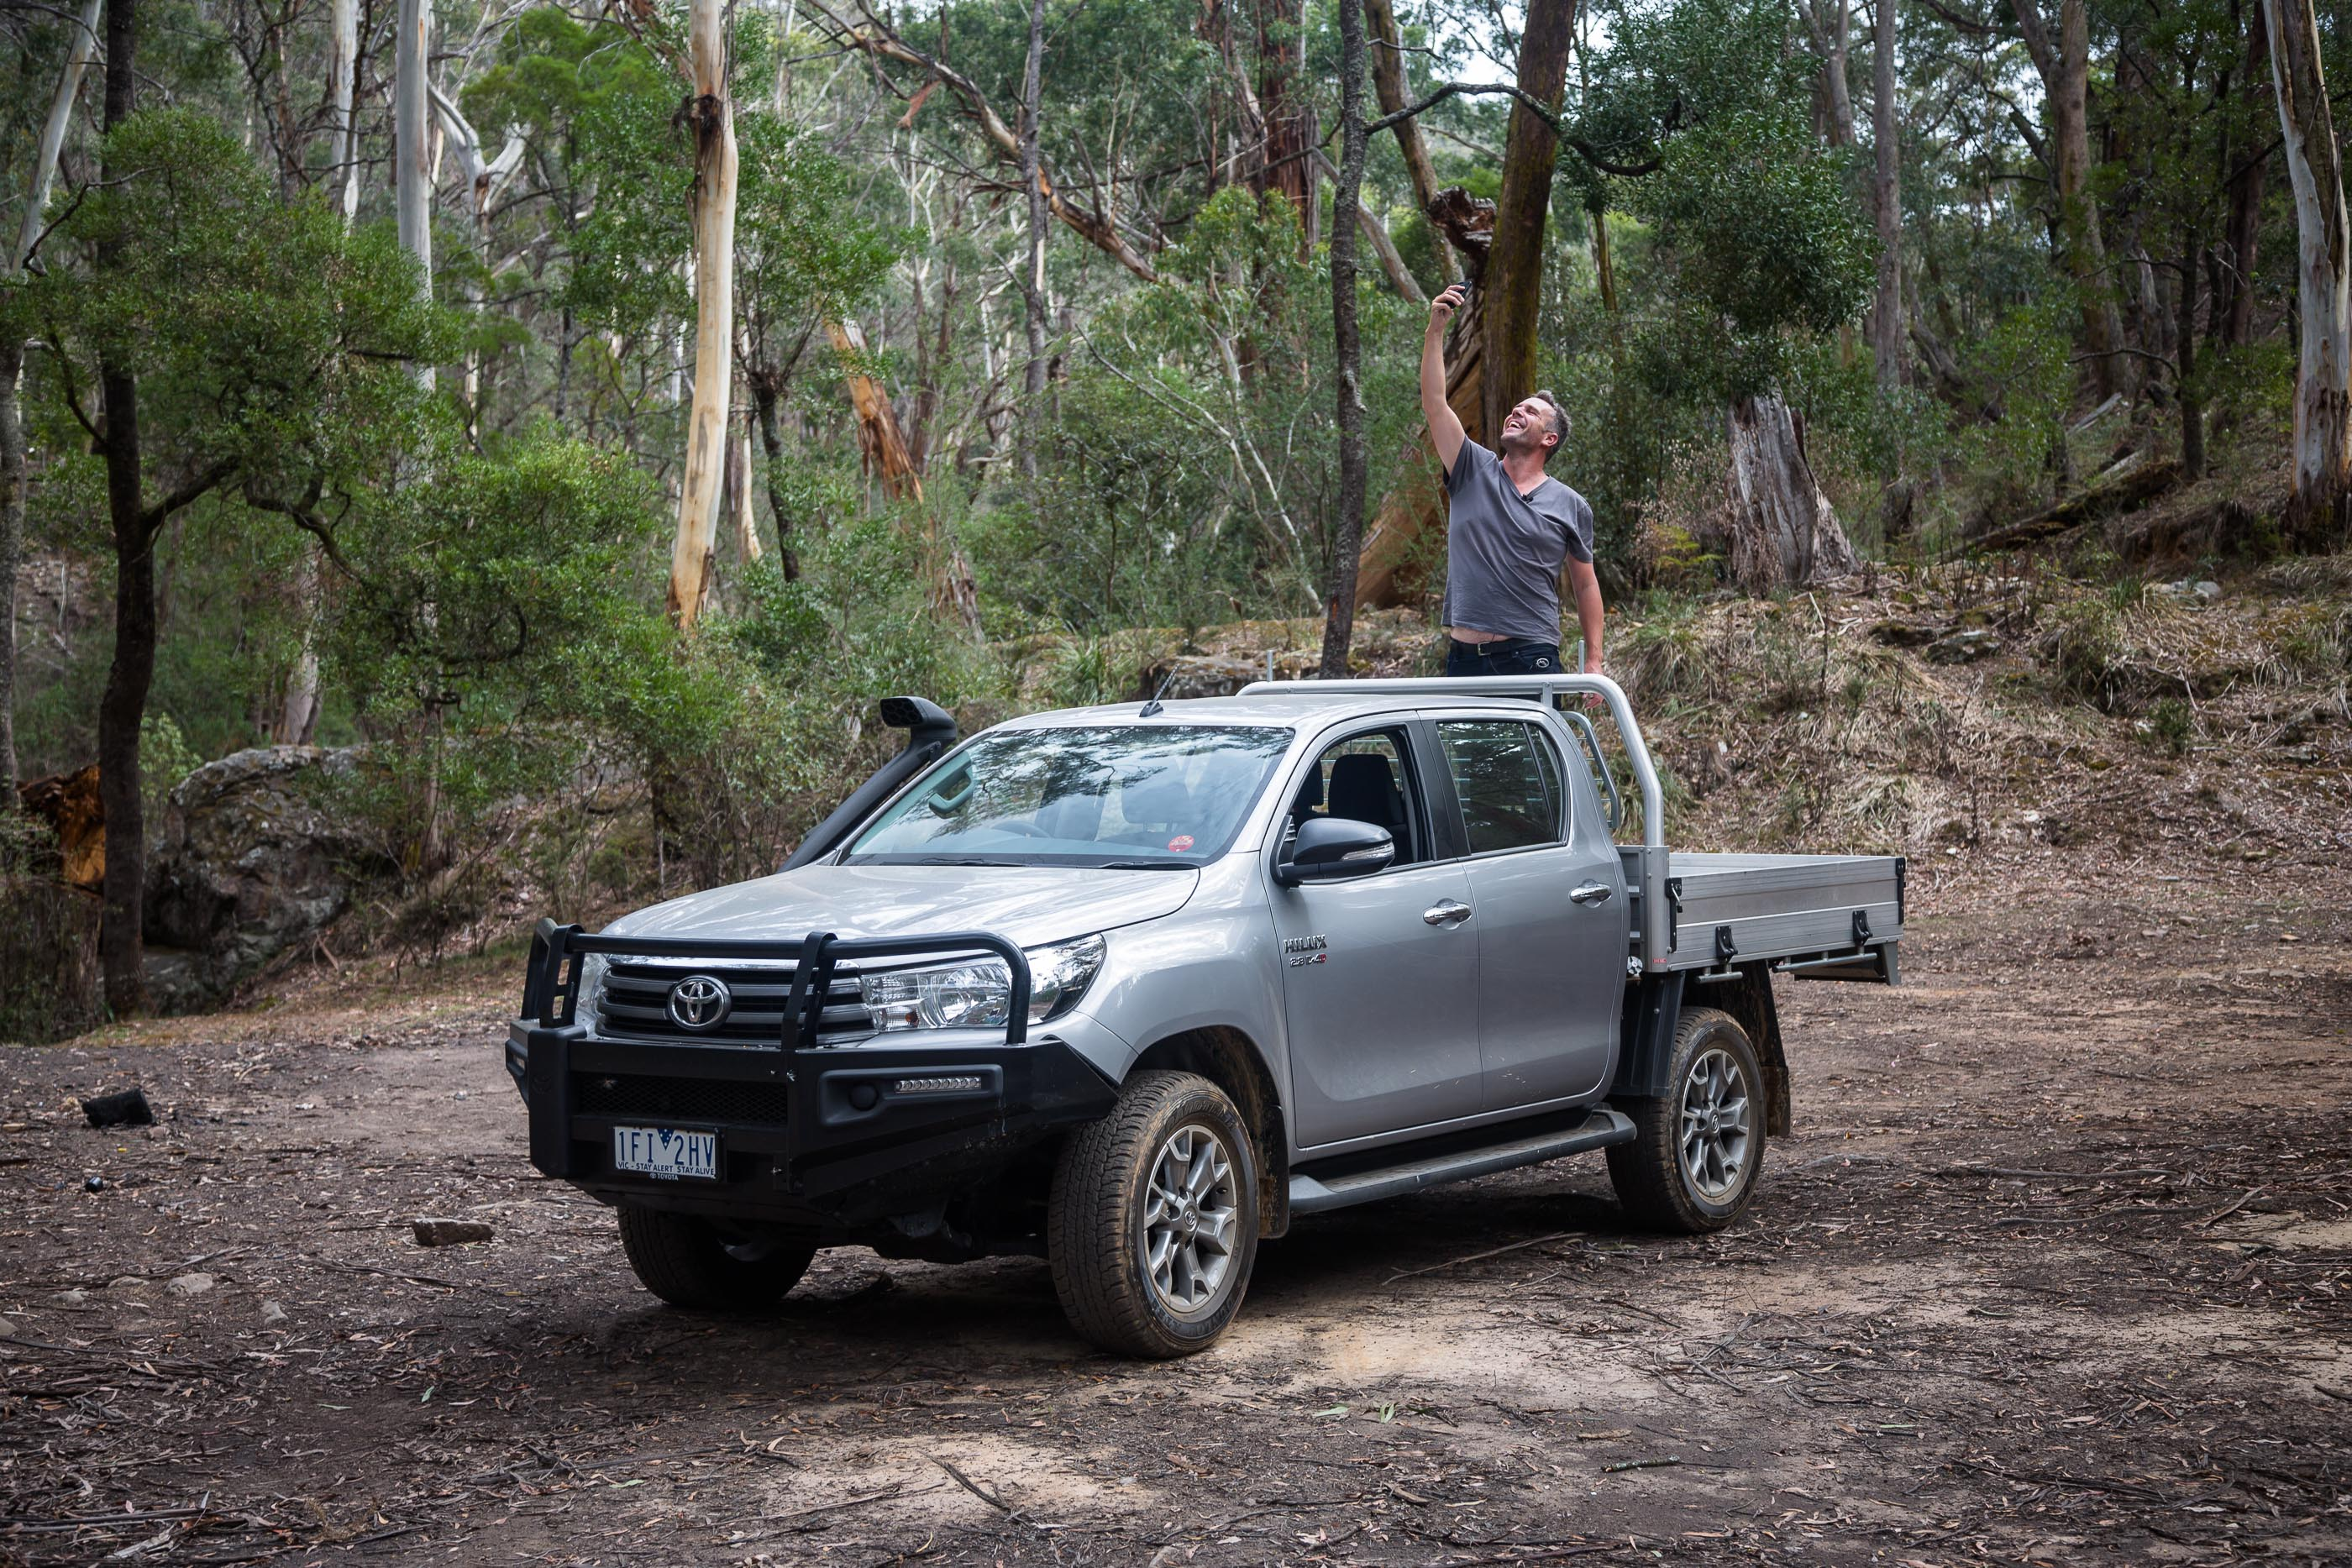 hilux 2016 modified | autocarwall customised toyota hilux 2016